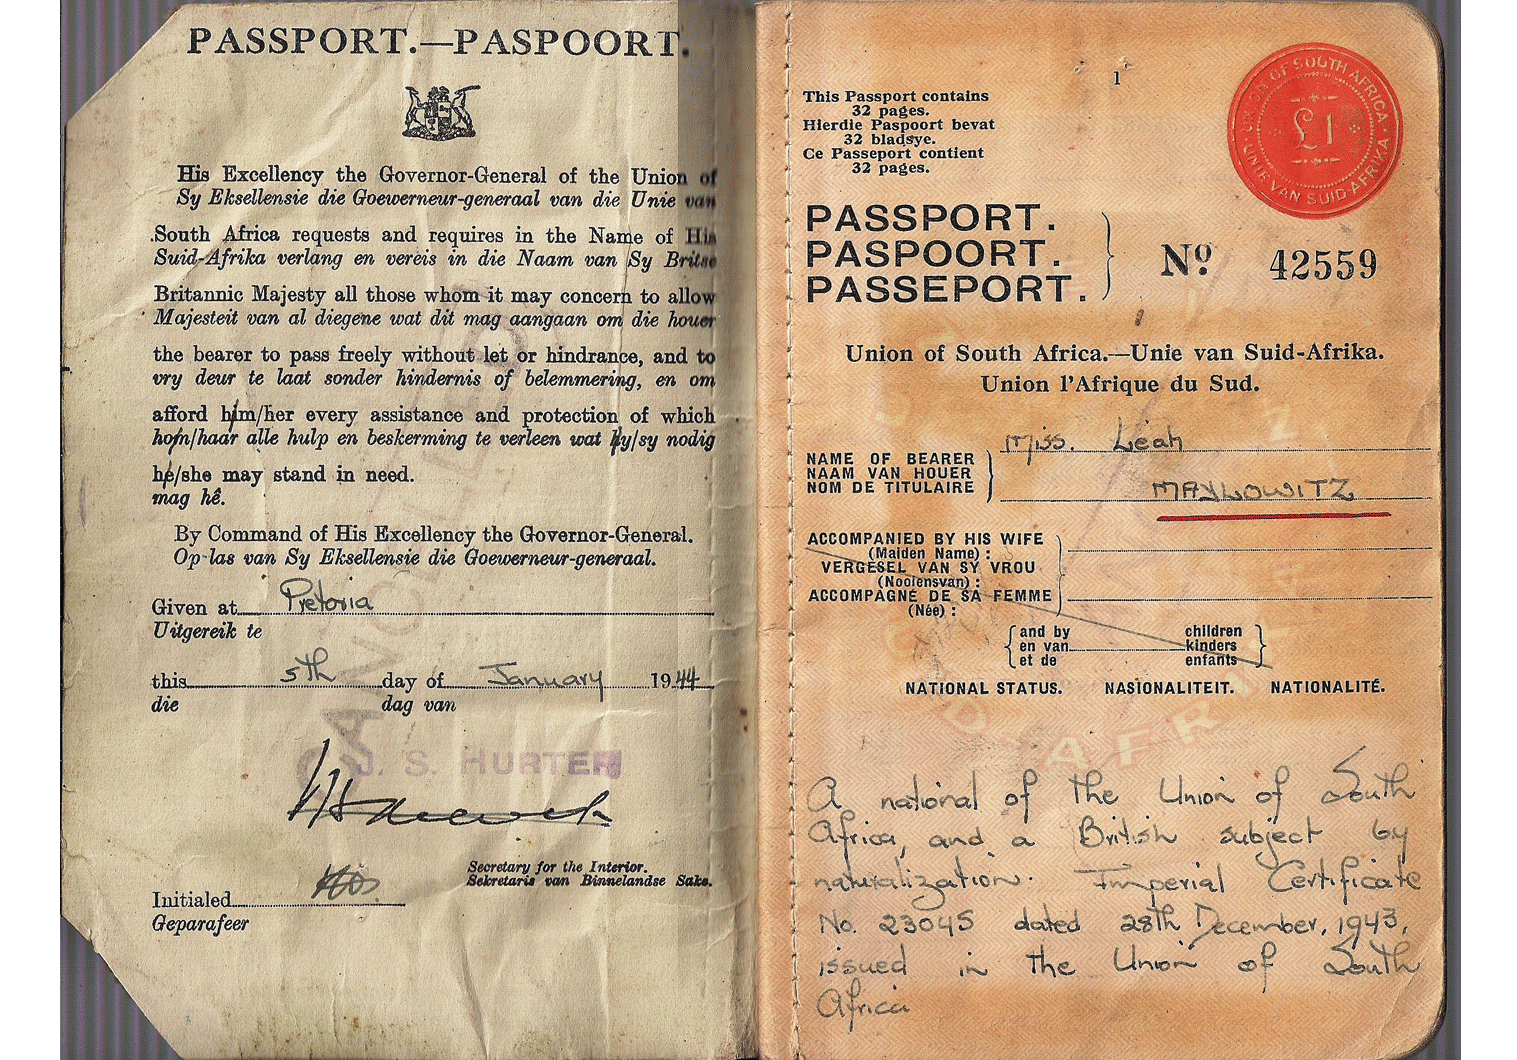 1944 issued South African passport